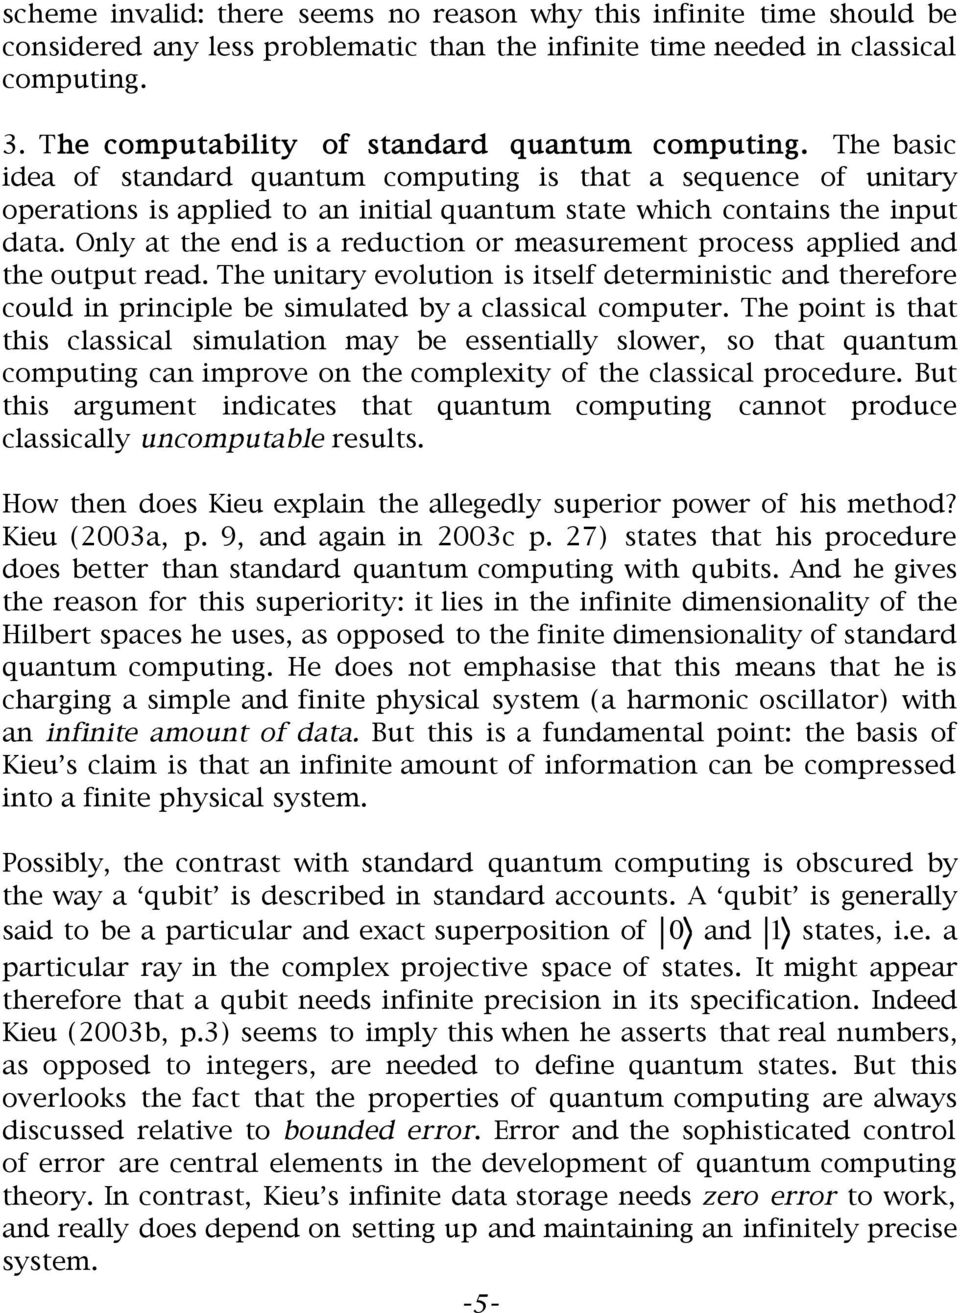 The basic idea of standard quantum computing is that a sequence of unitary operations is applied to an initial quantum state which contains the input data.